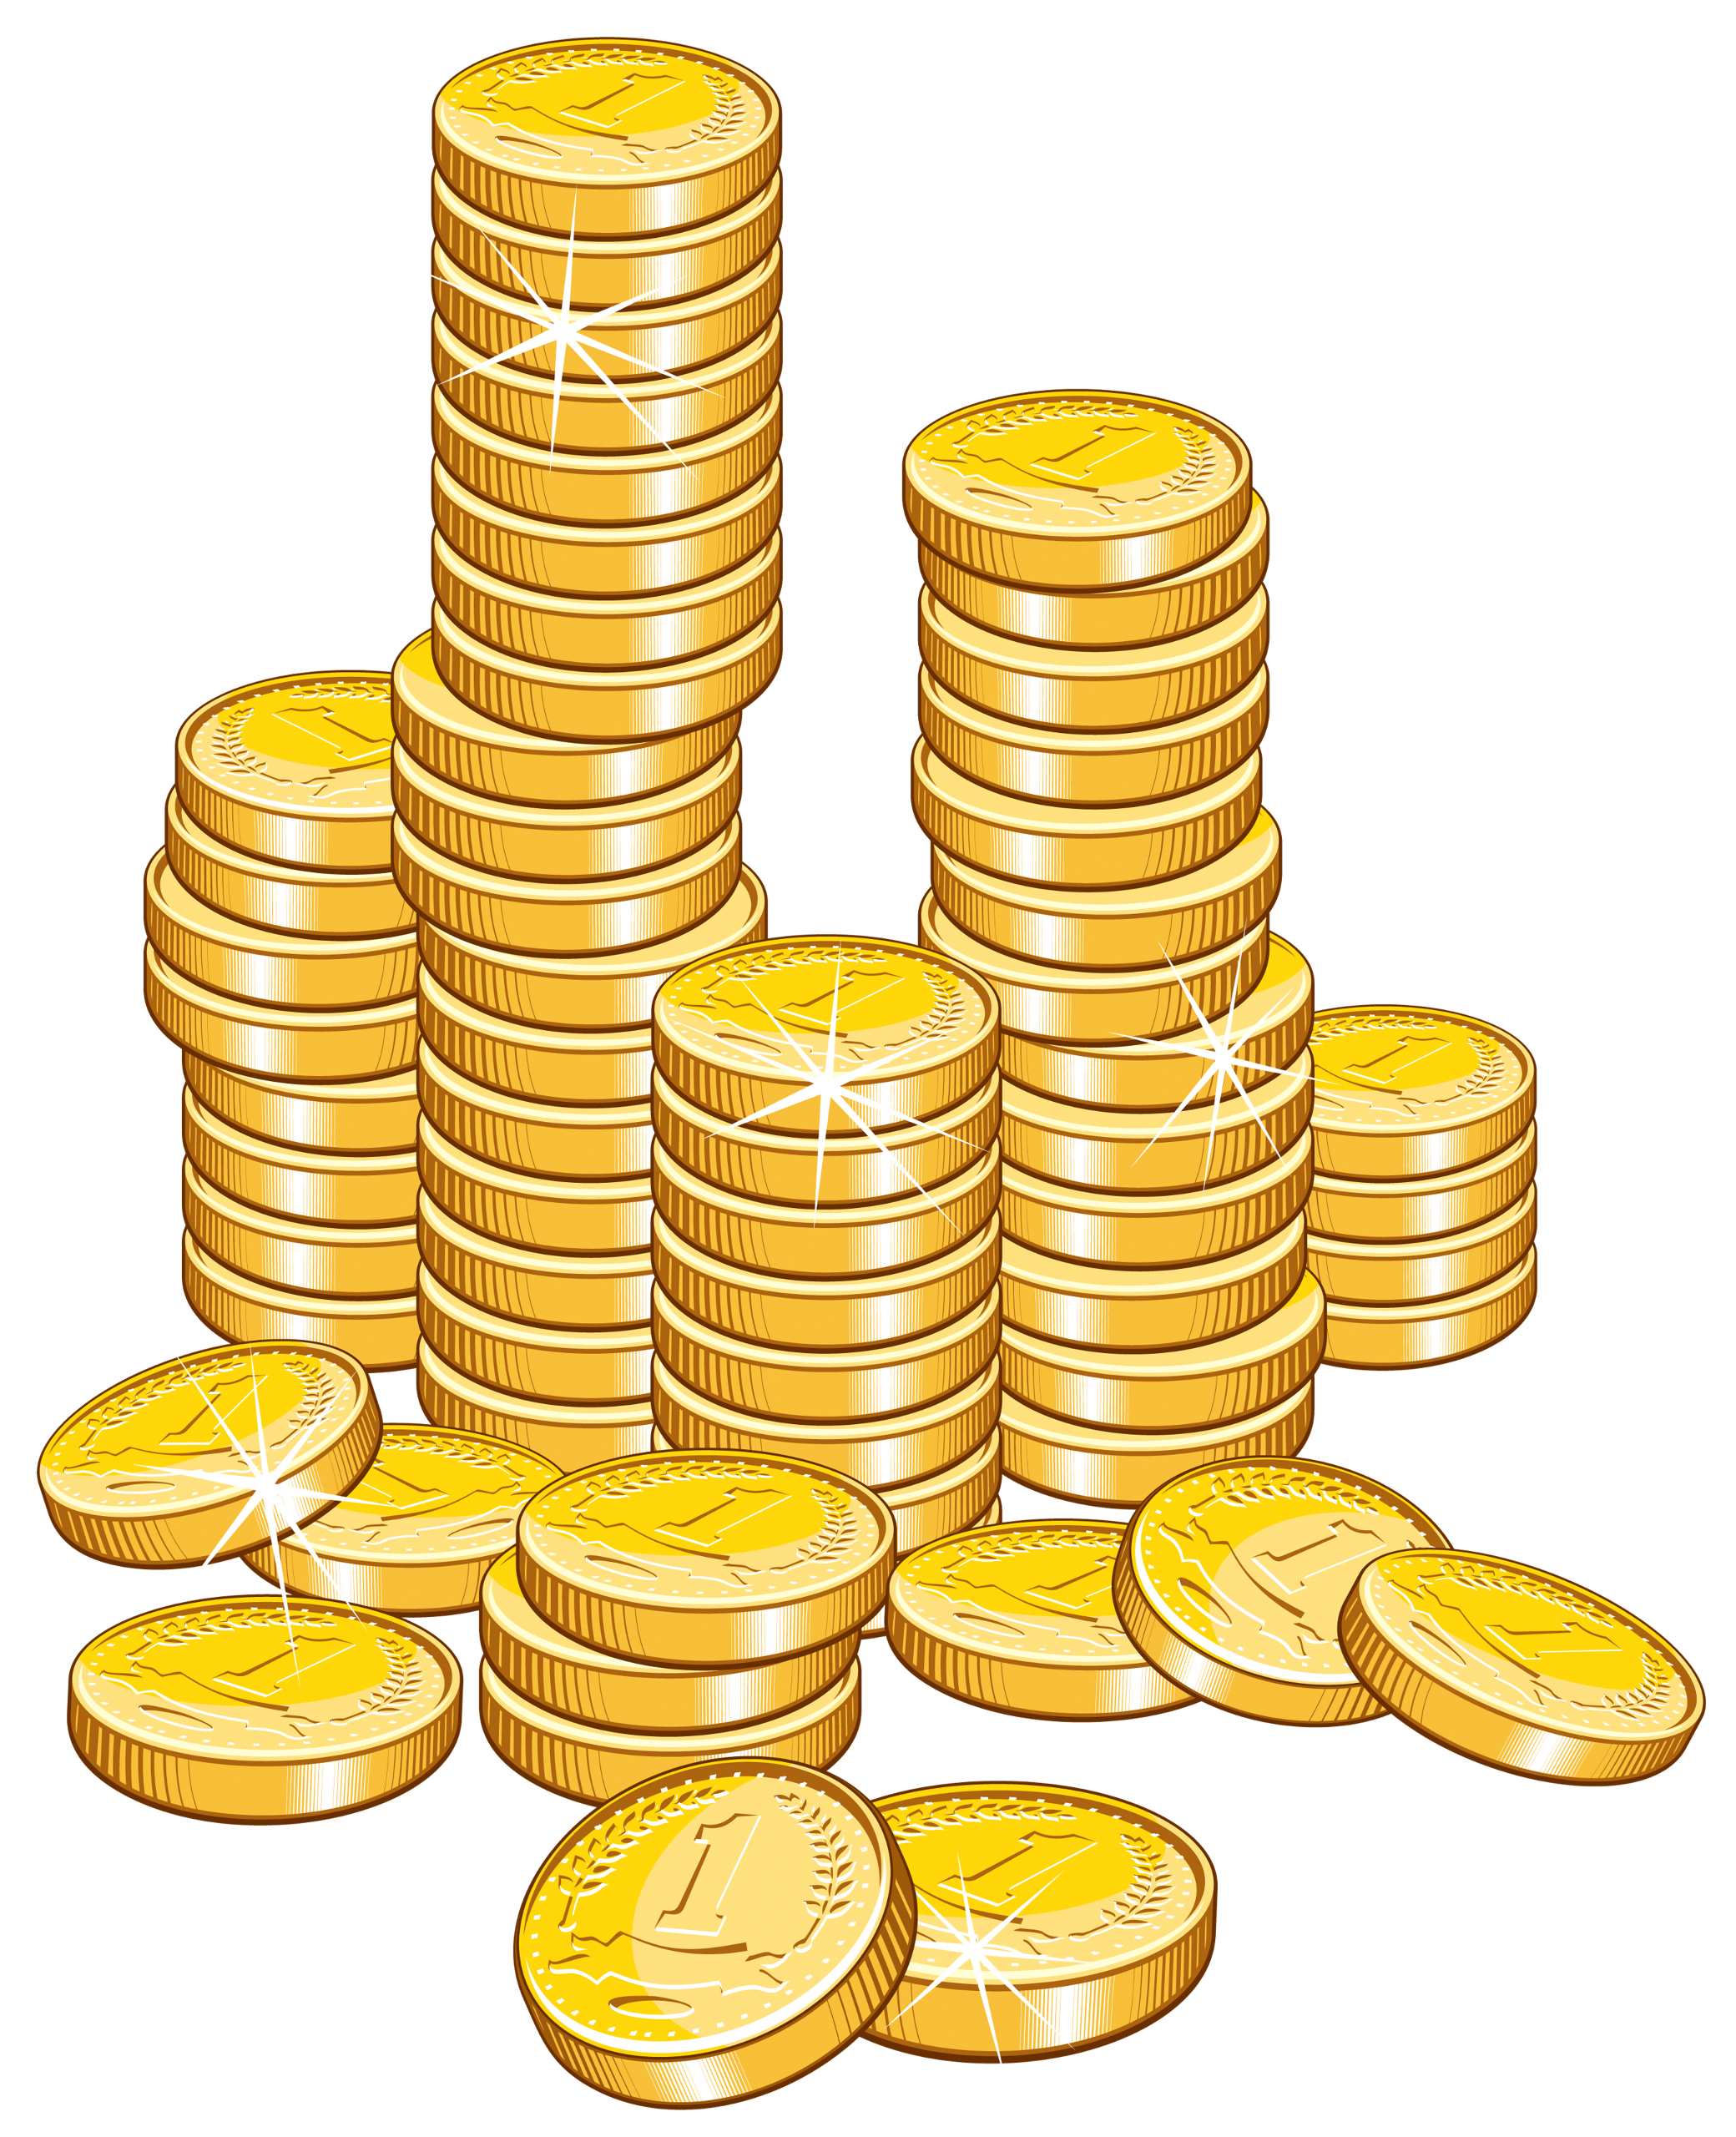 Coins_Stack_PNG_Clipart_Picture.png